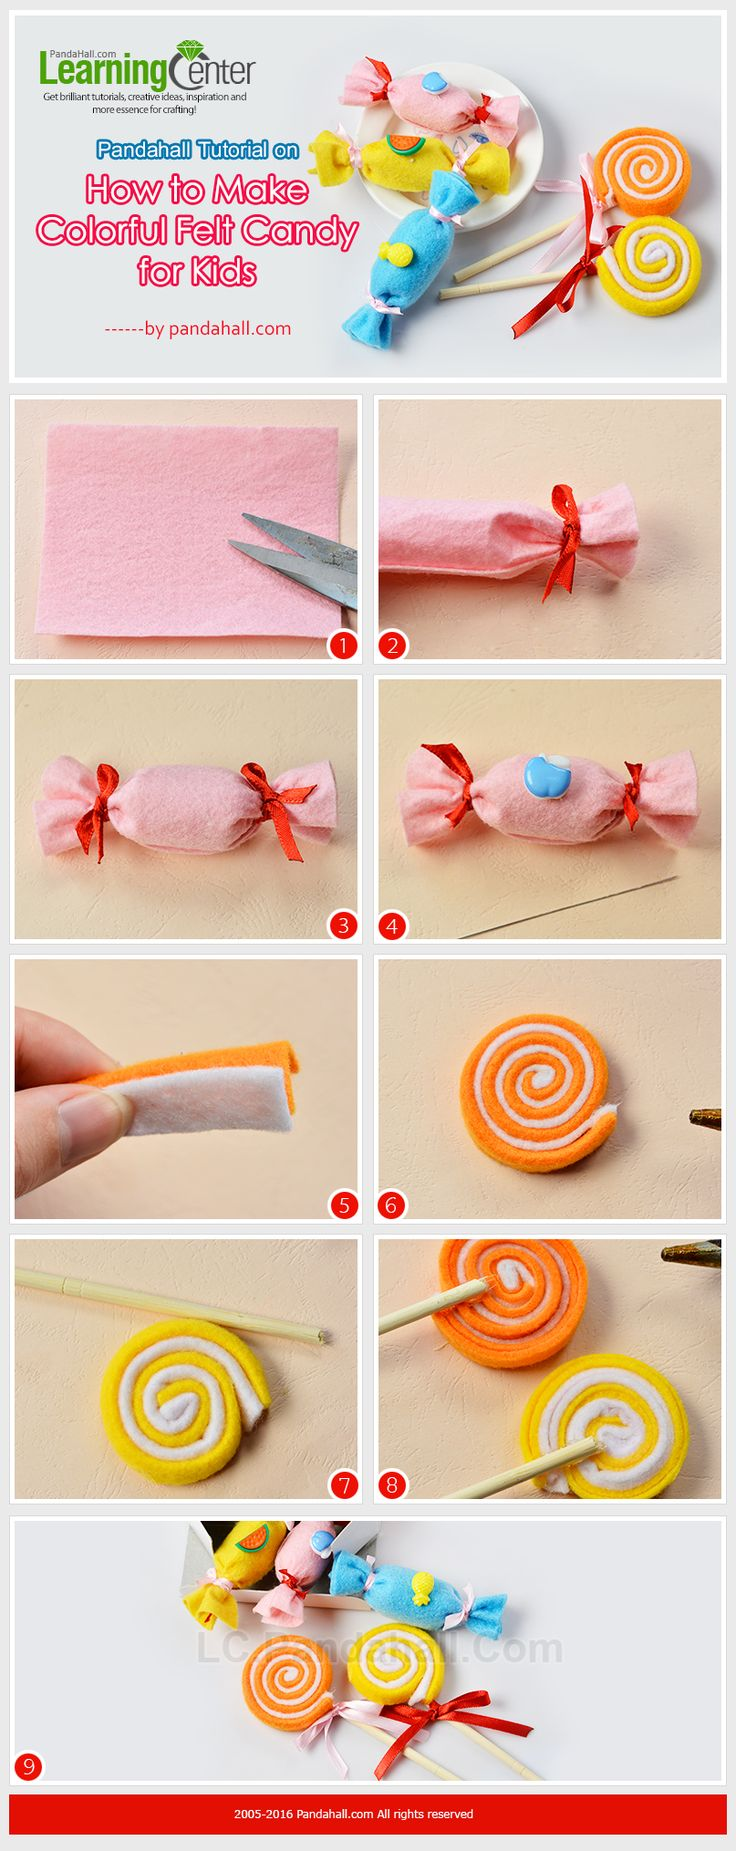 Pandahall Tutorial on How to Make Colorful Felt Candy for Kids #tutorial #feltcandy #pandahall